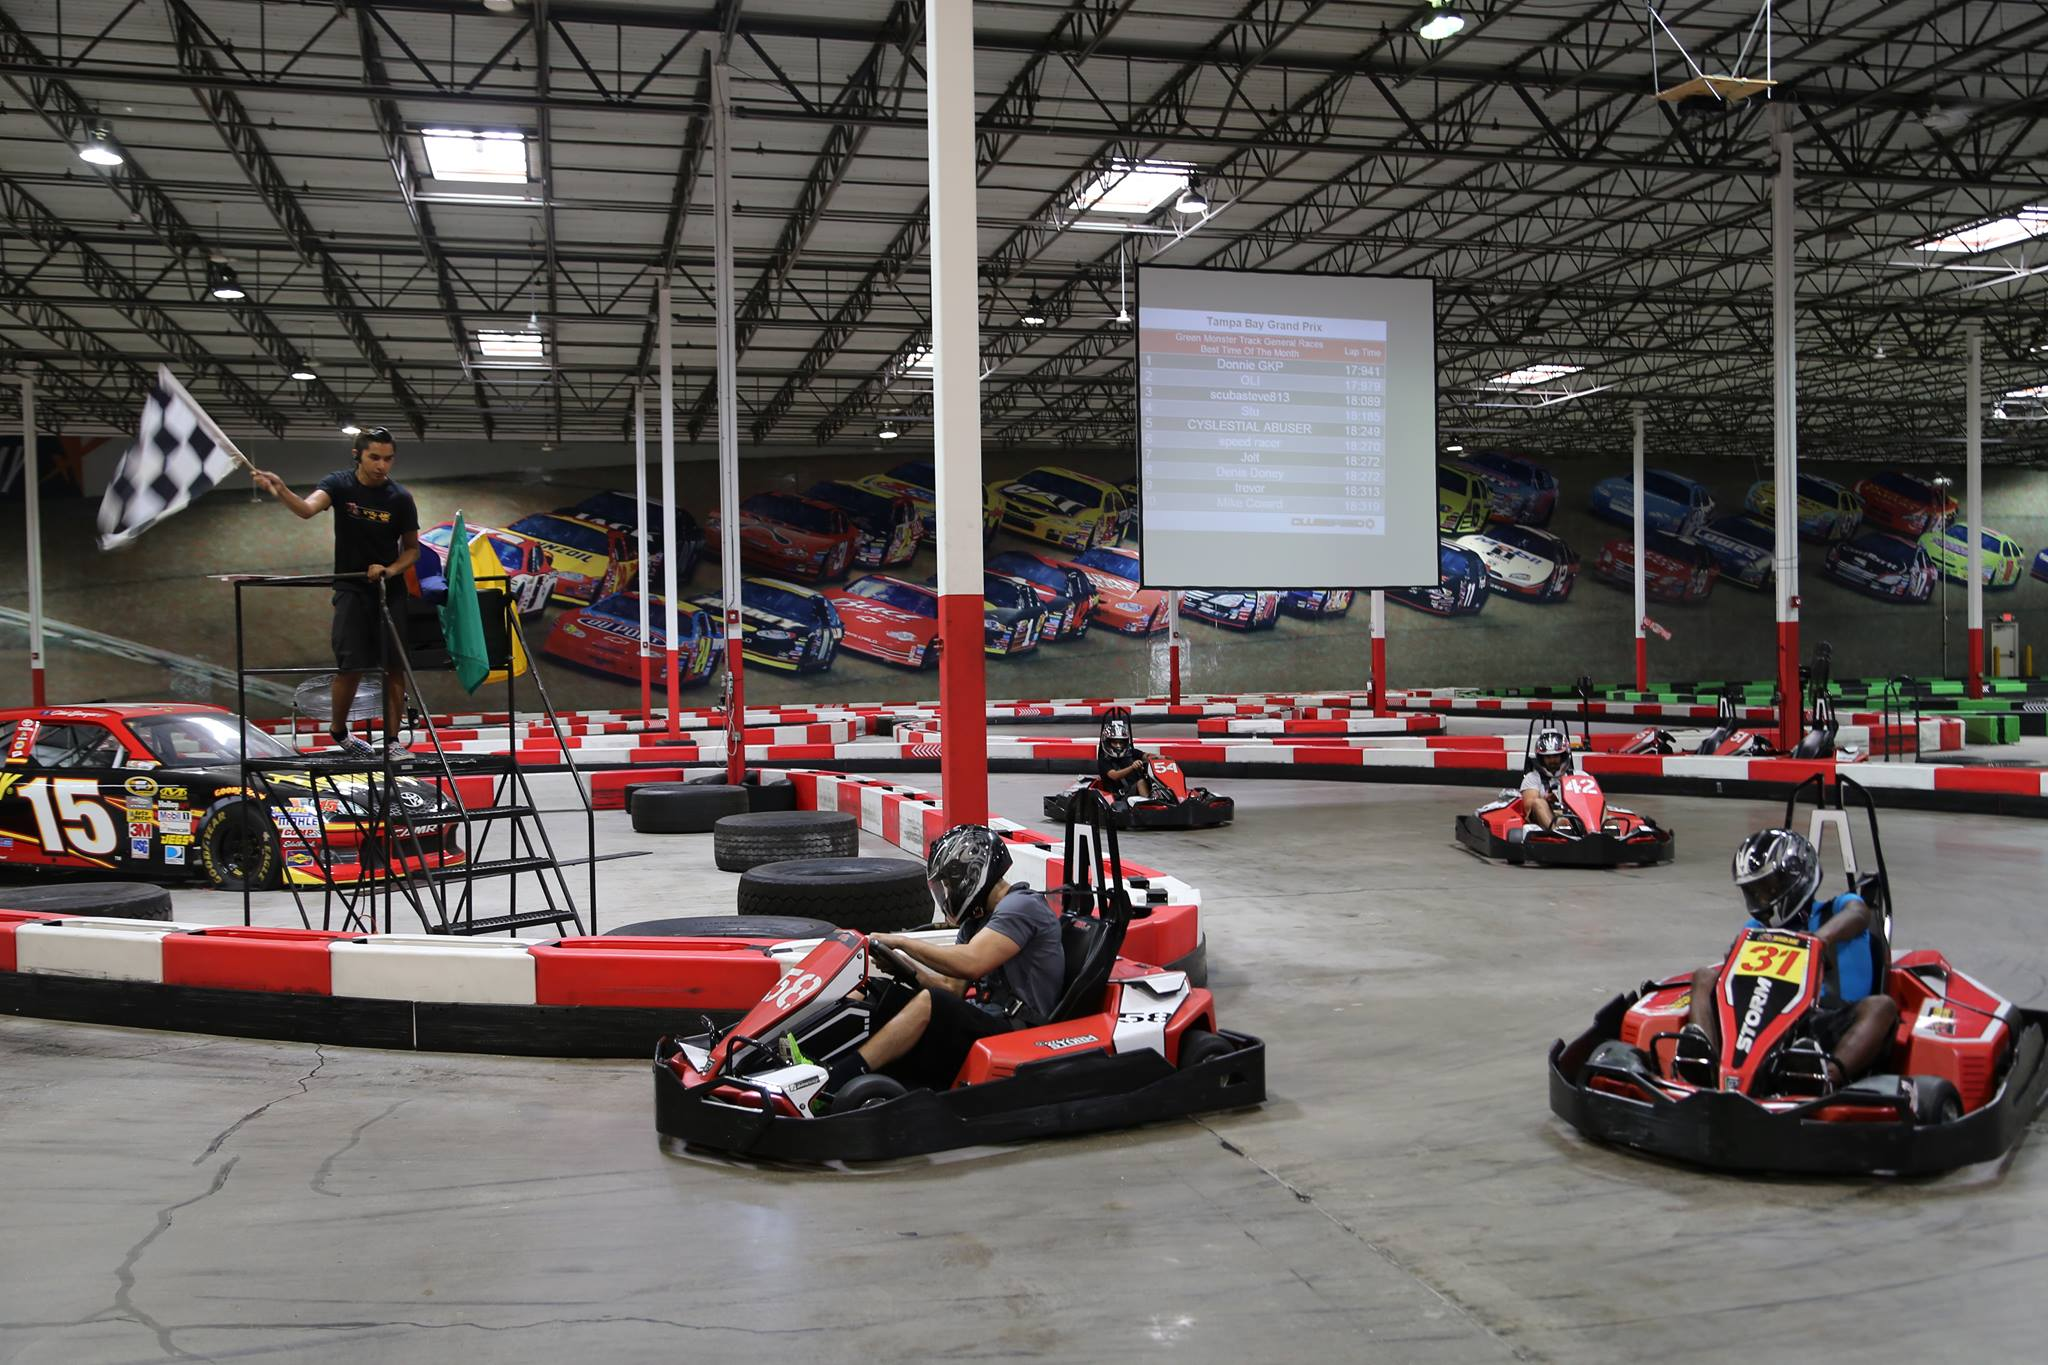 Tampa Bay Grand Prix | Go Kart Racing in Tampa & Clearwater